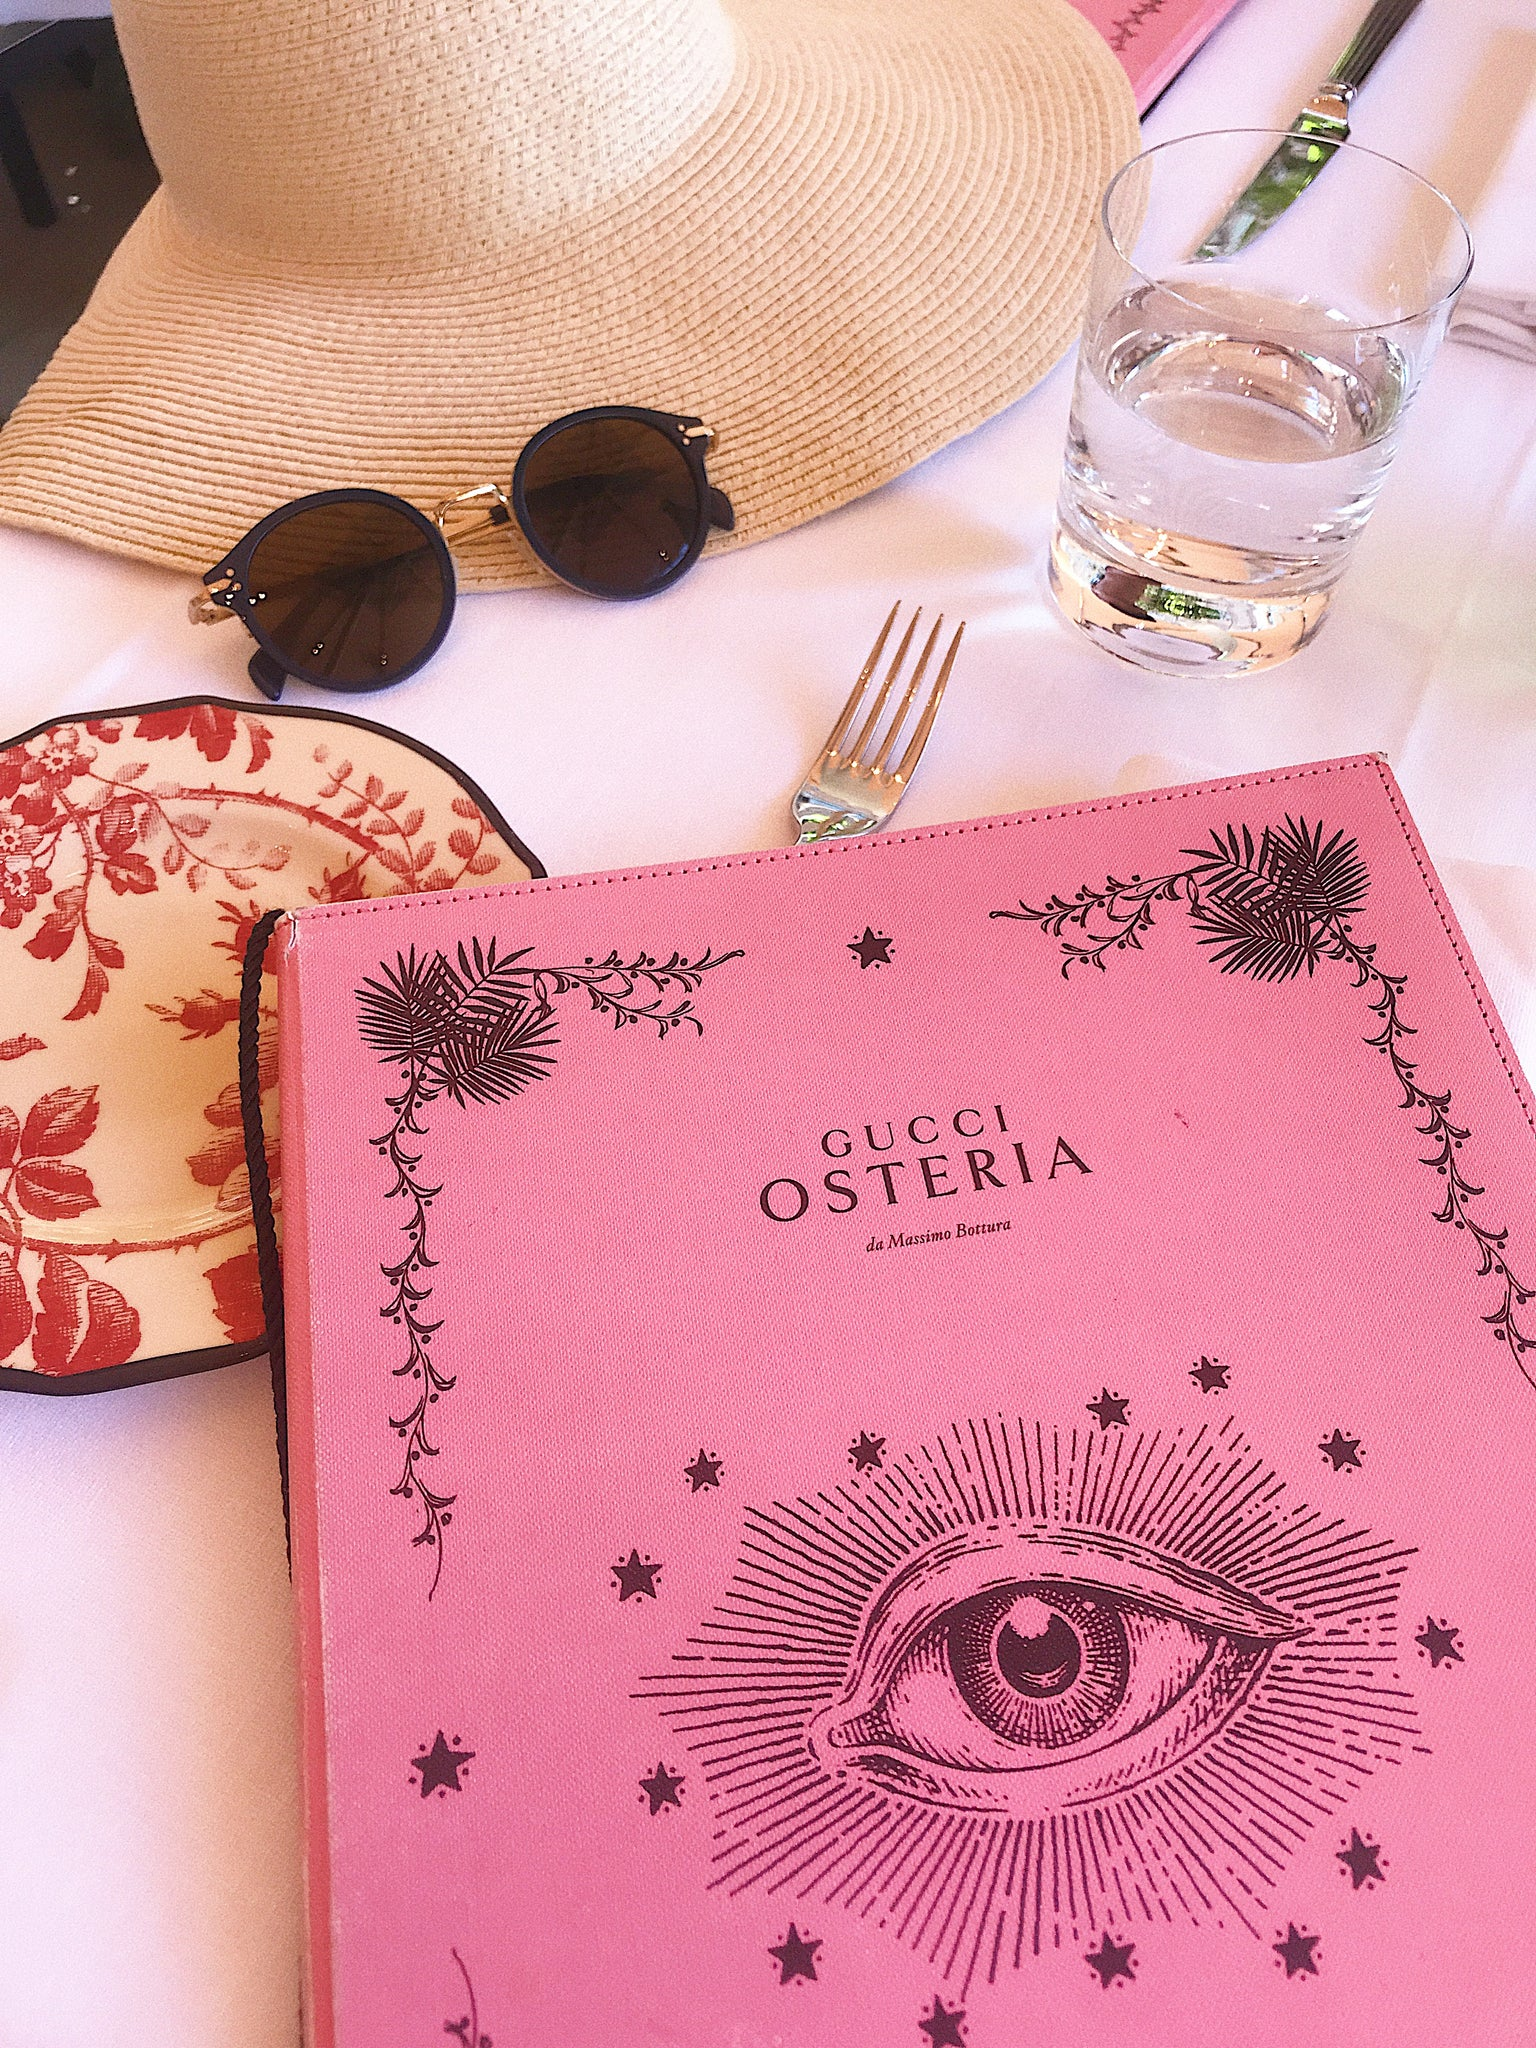 Gucci Museum, Osteria, Lunch spot Florence, Italy